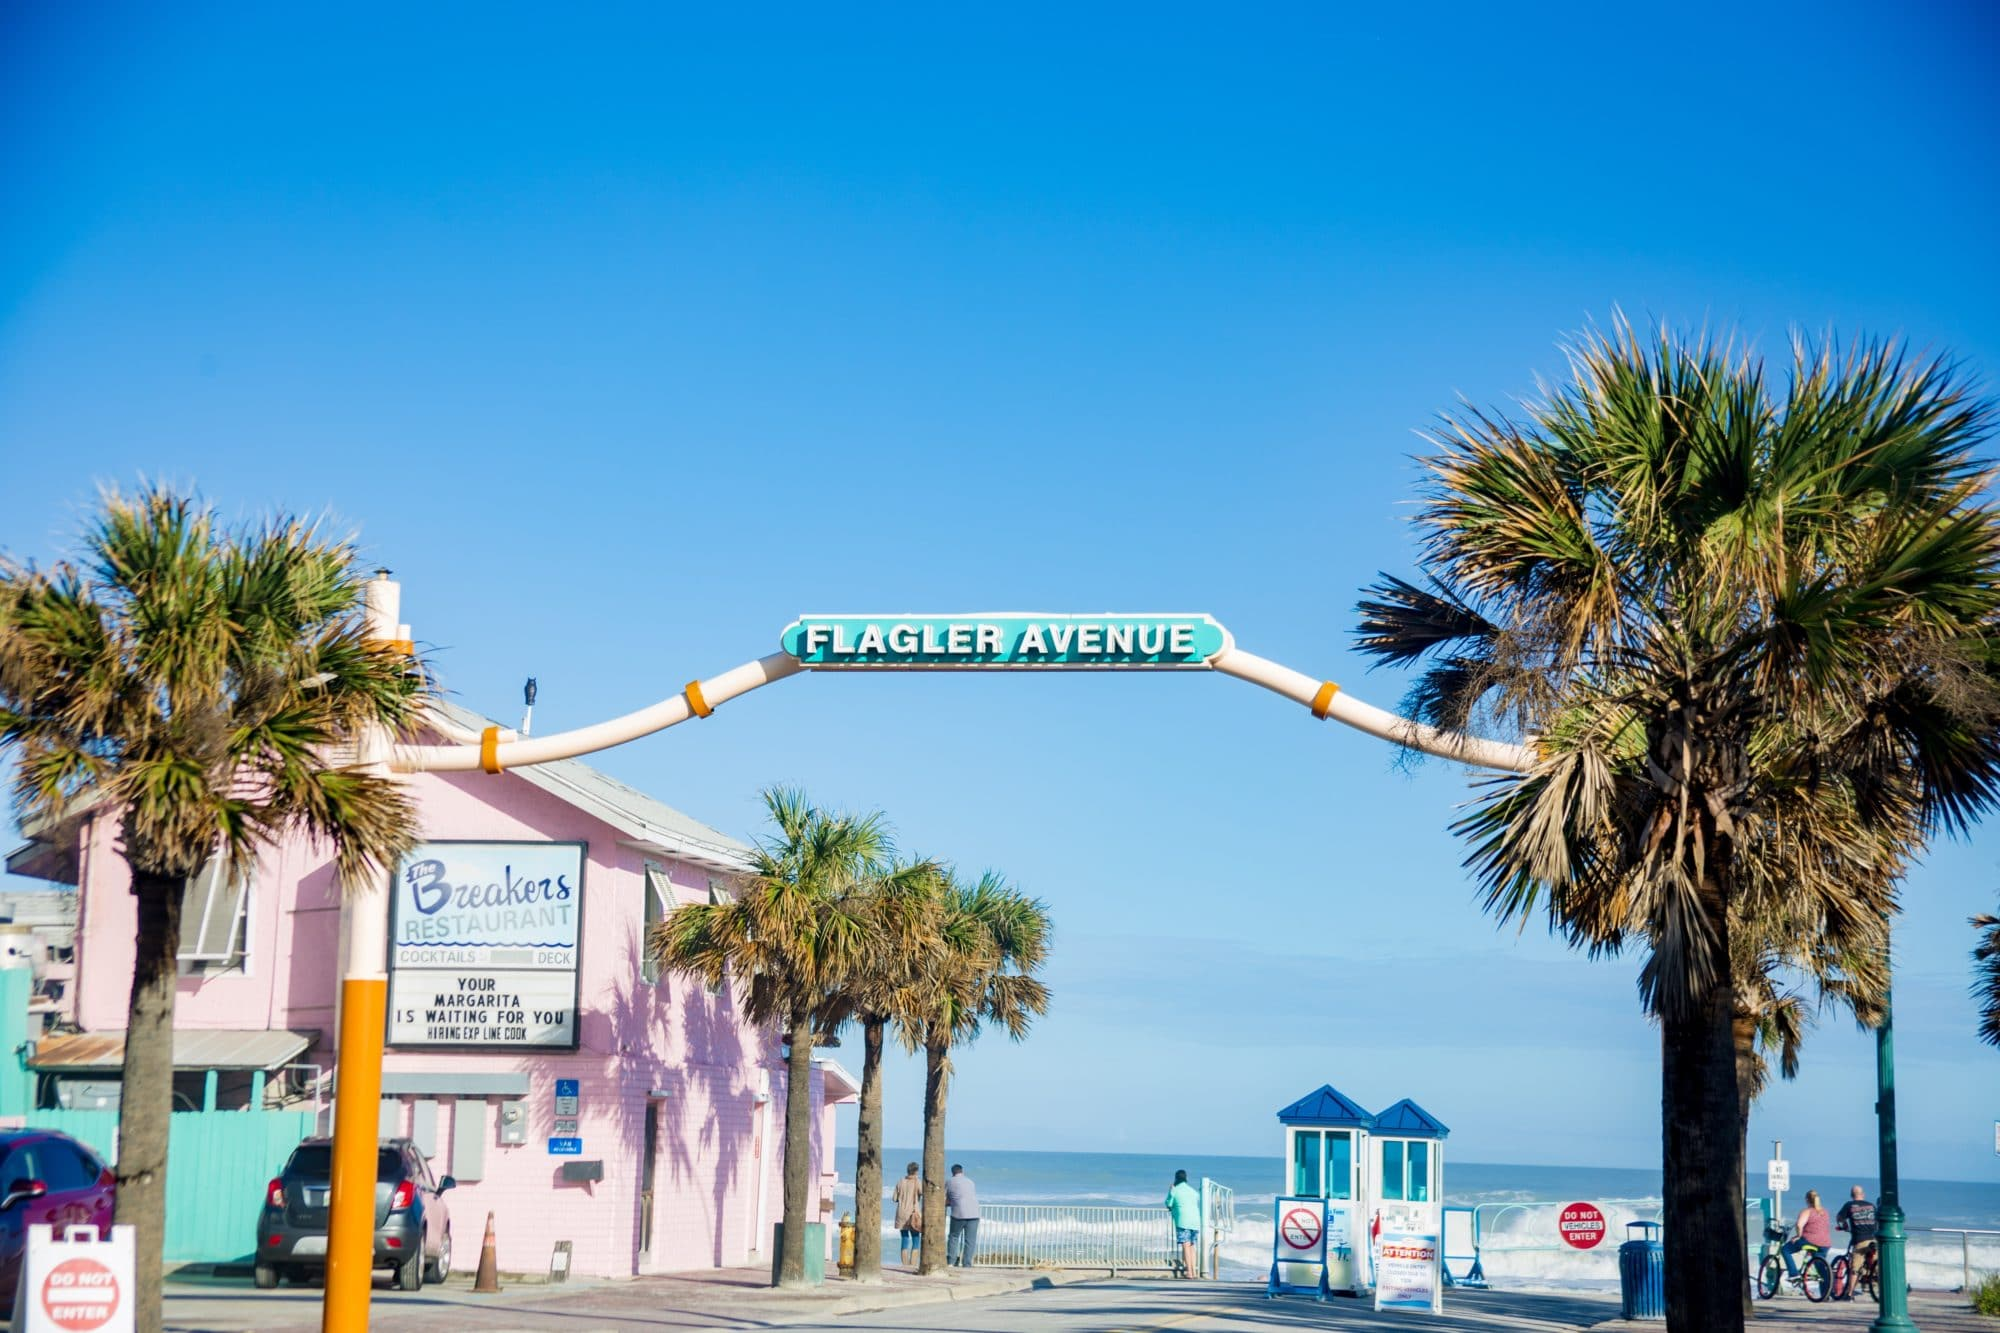 Flagler avenue vehical access ramp in New Smyrna Beach. FL that is taken by Hinson Photography